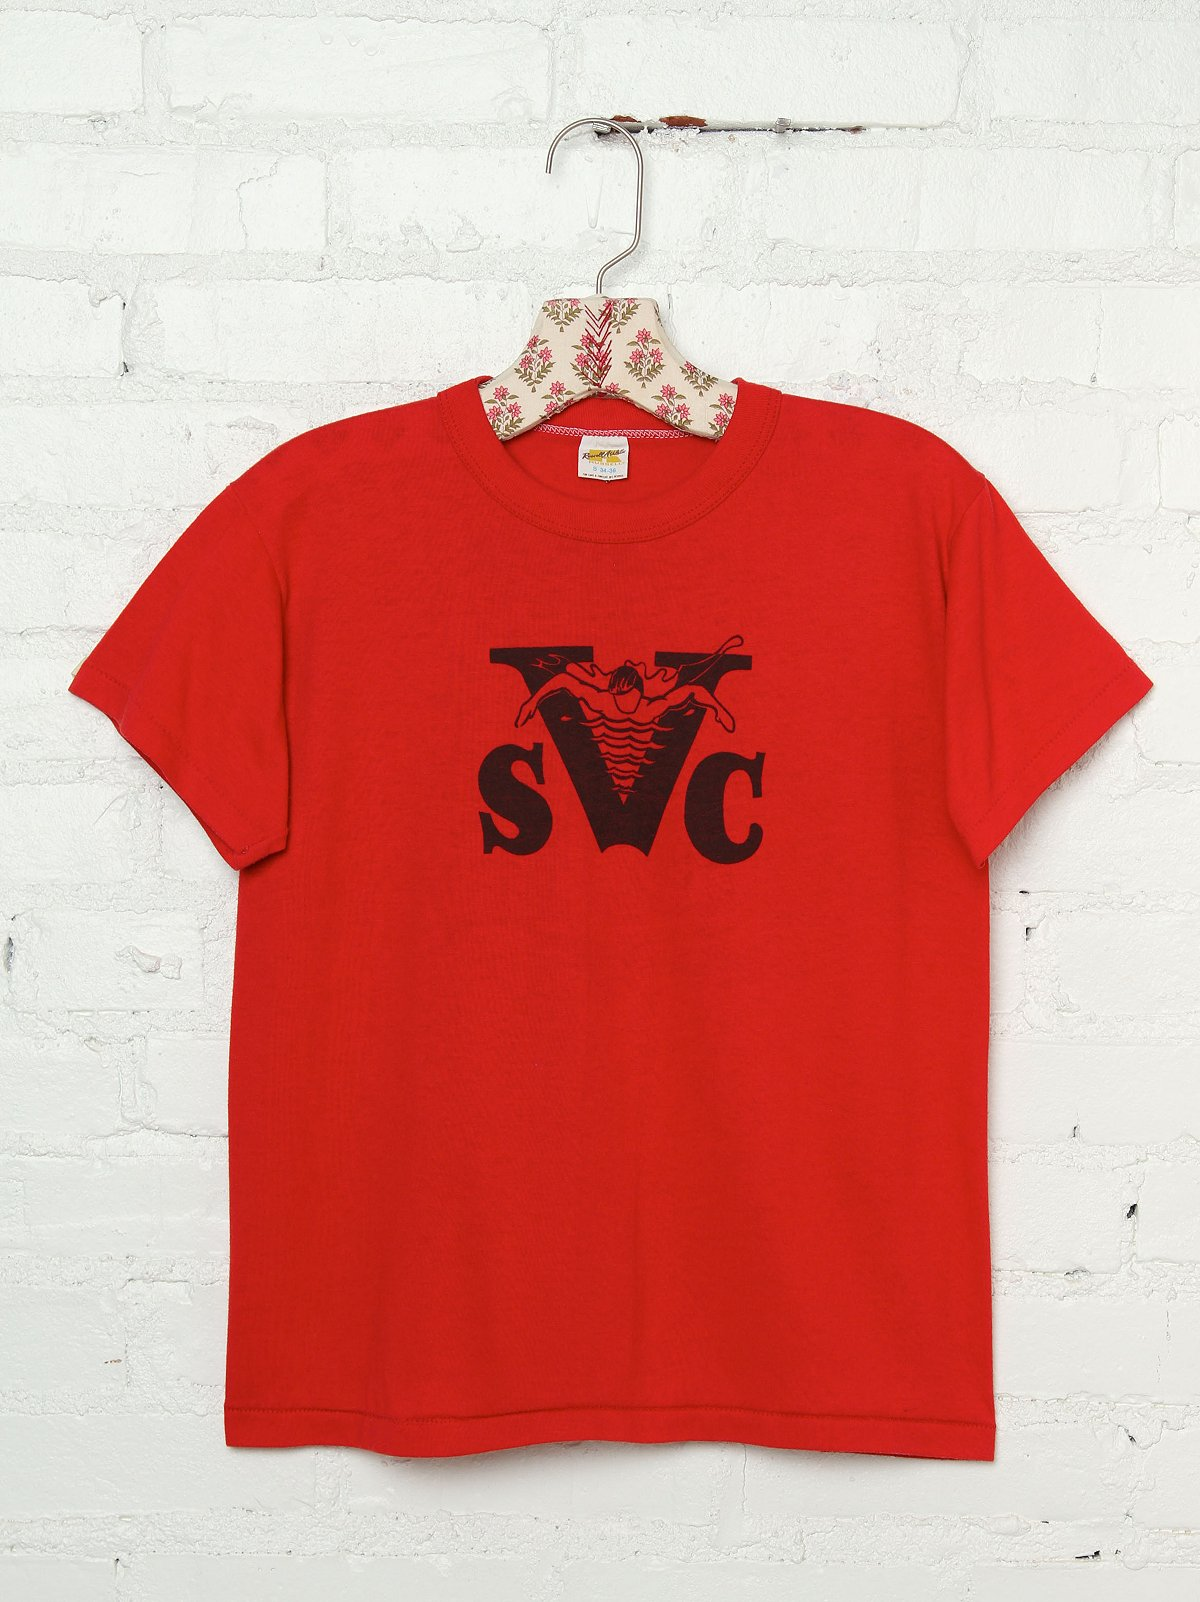 Vintage SVC Swim Graphic Tee